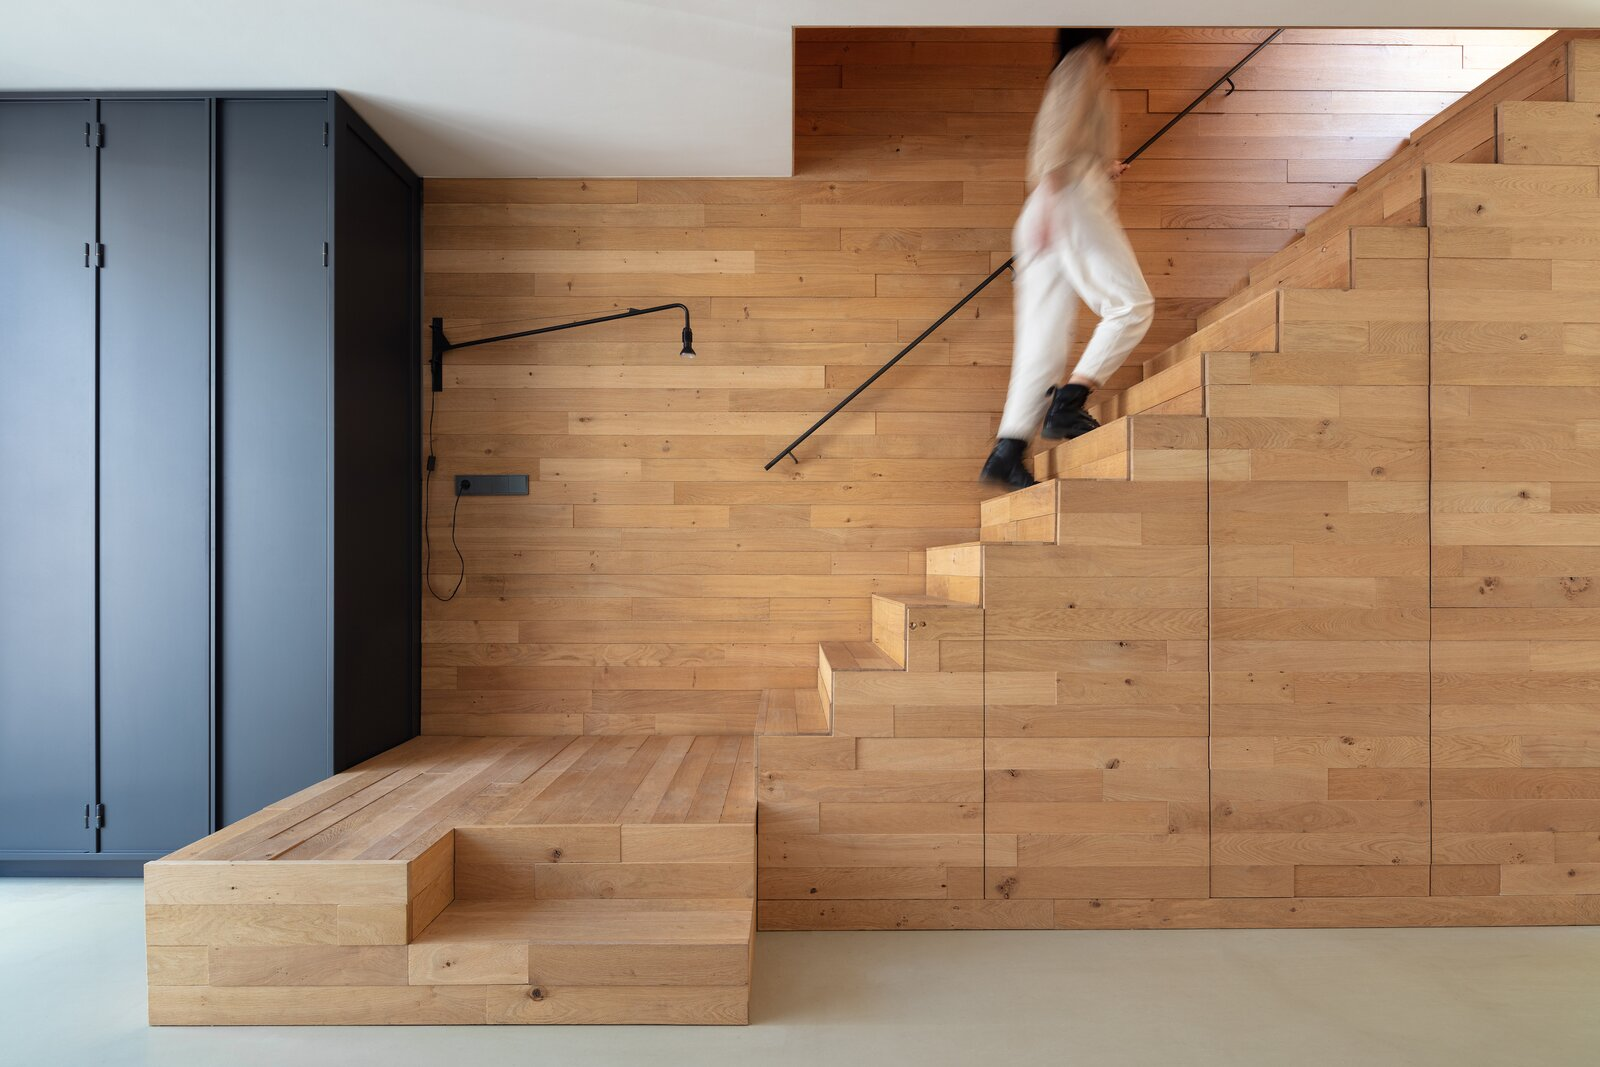 Steel Craft House staircase